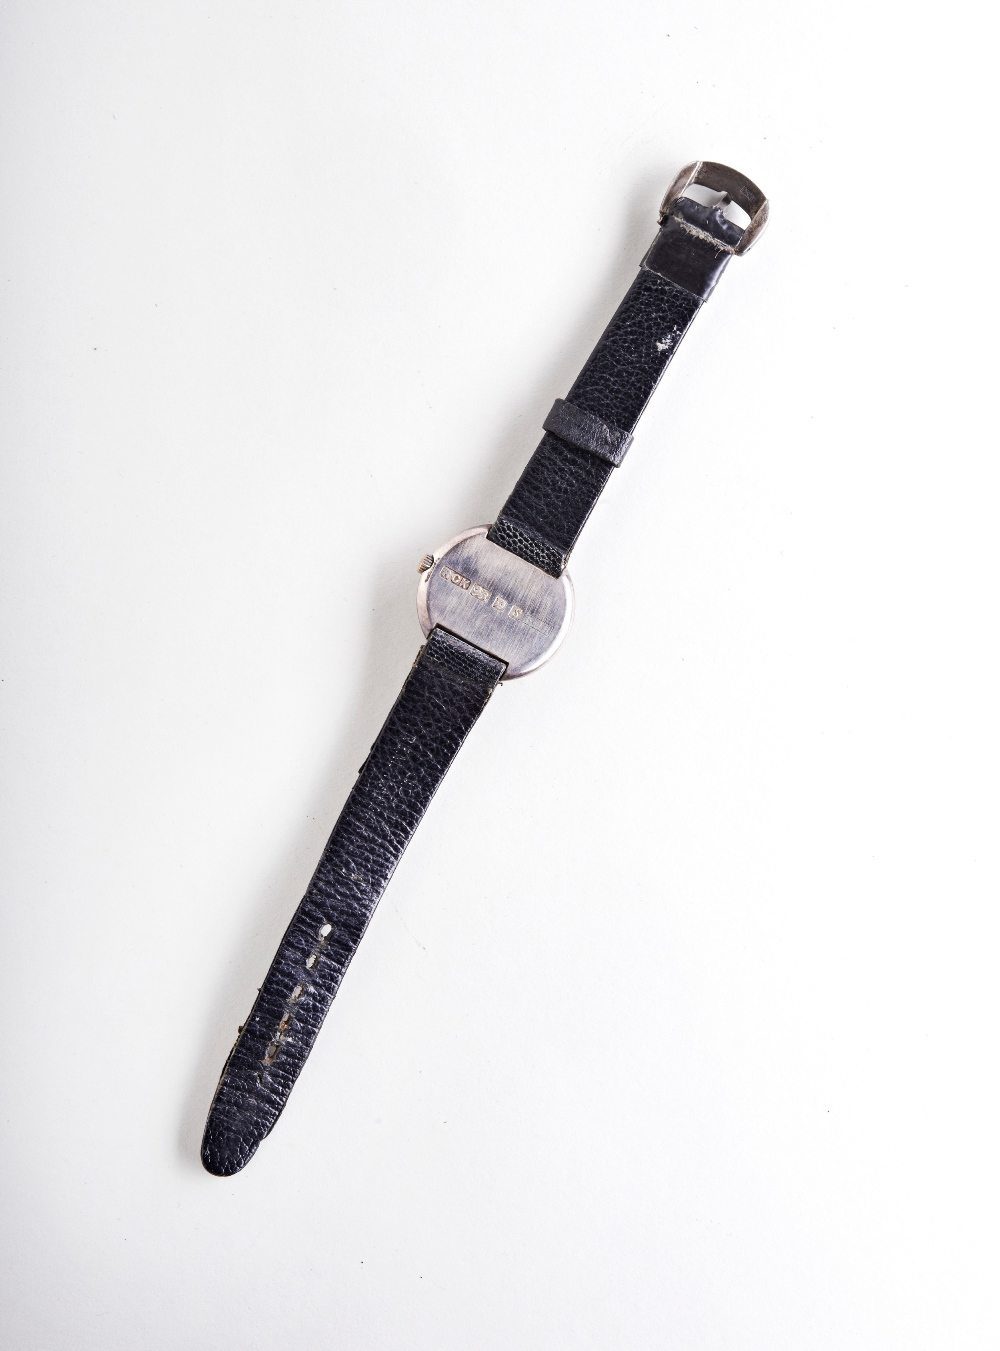 ROY KING SILVER MANUAL WIND UNISEX WRISTWATCH, the leaf effect dial with black signature the case - Image 3 of 3